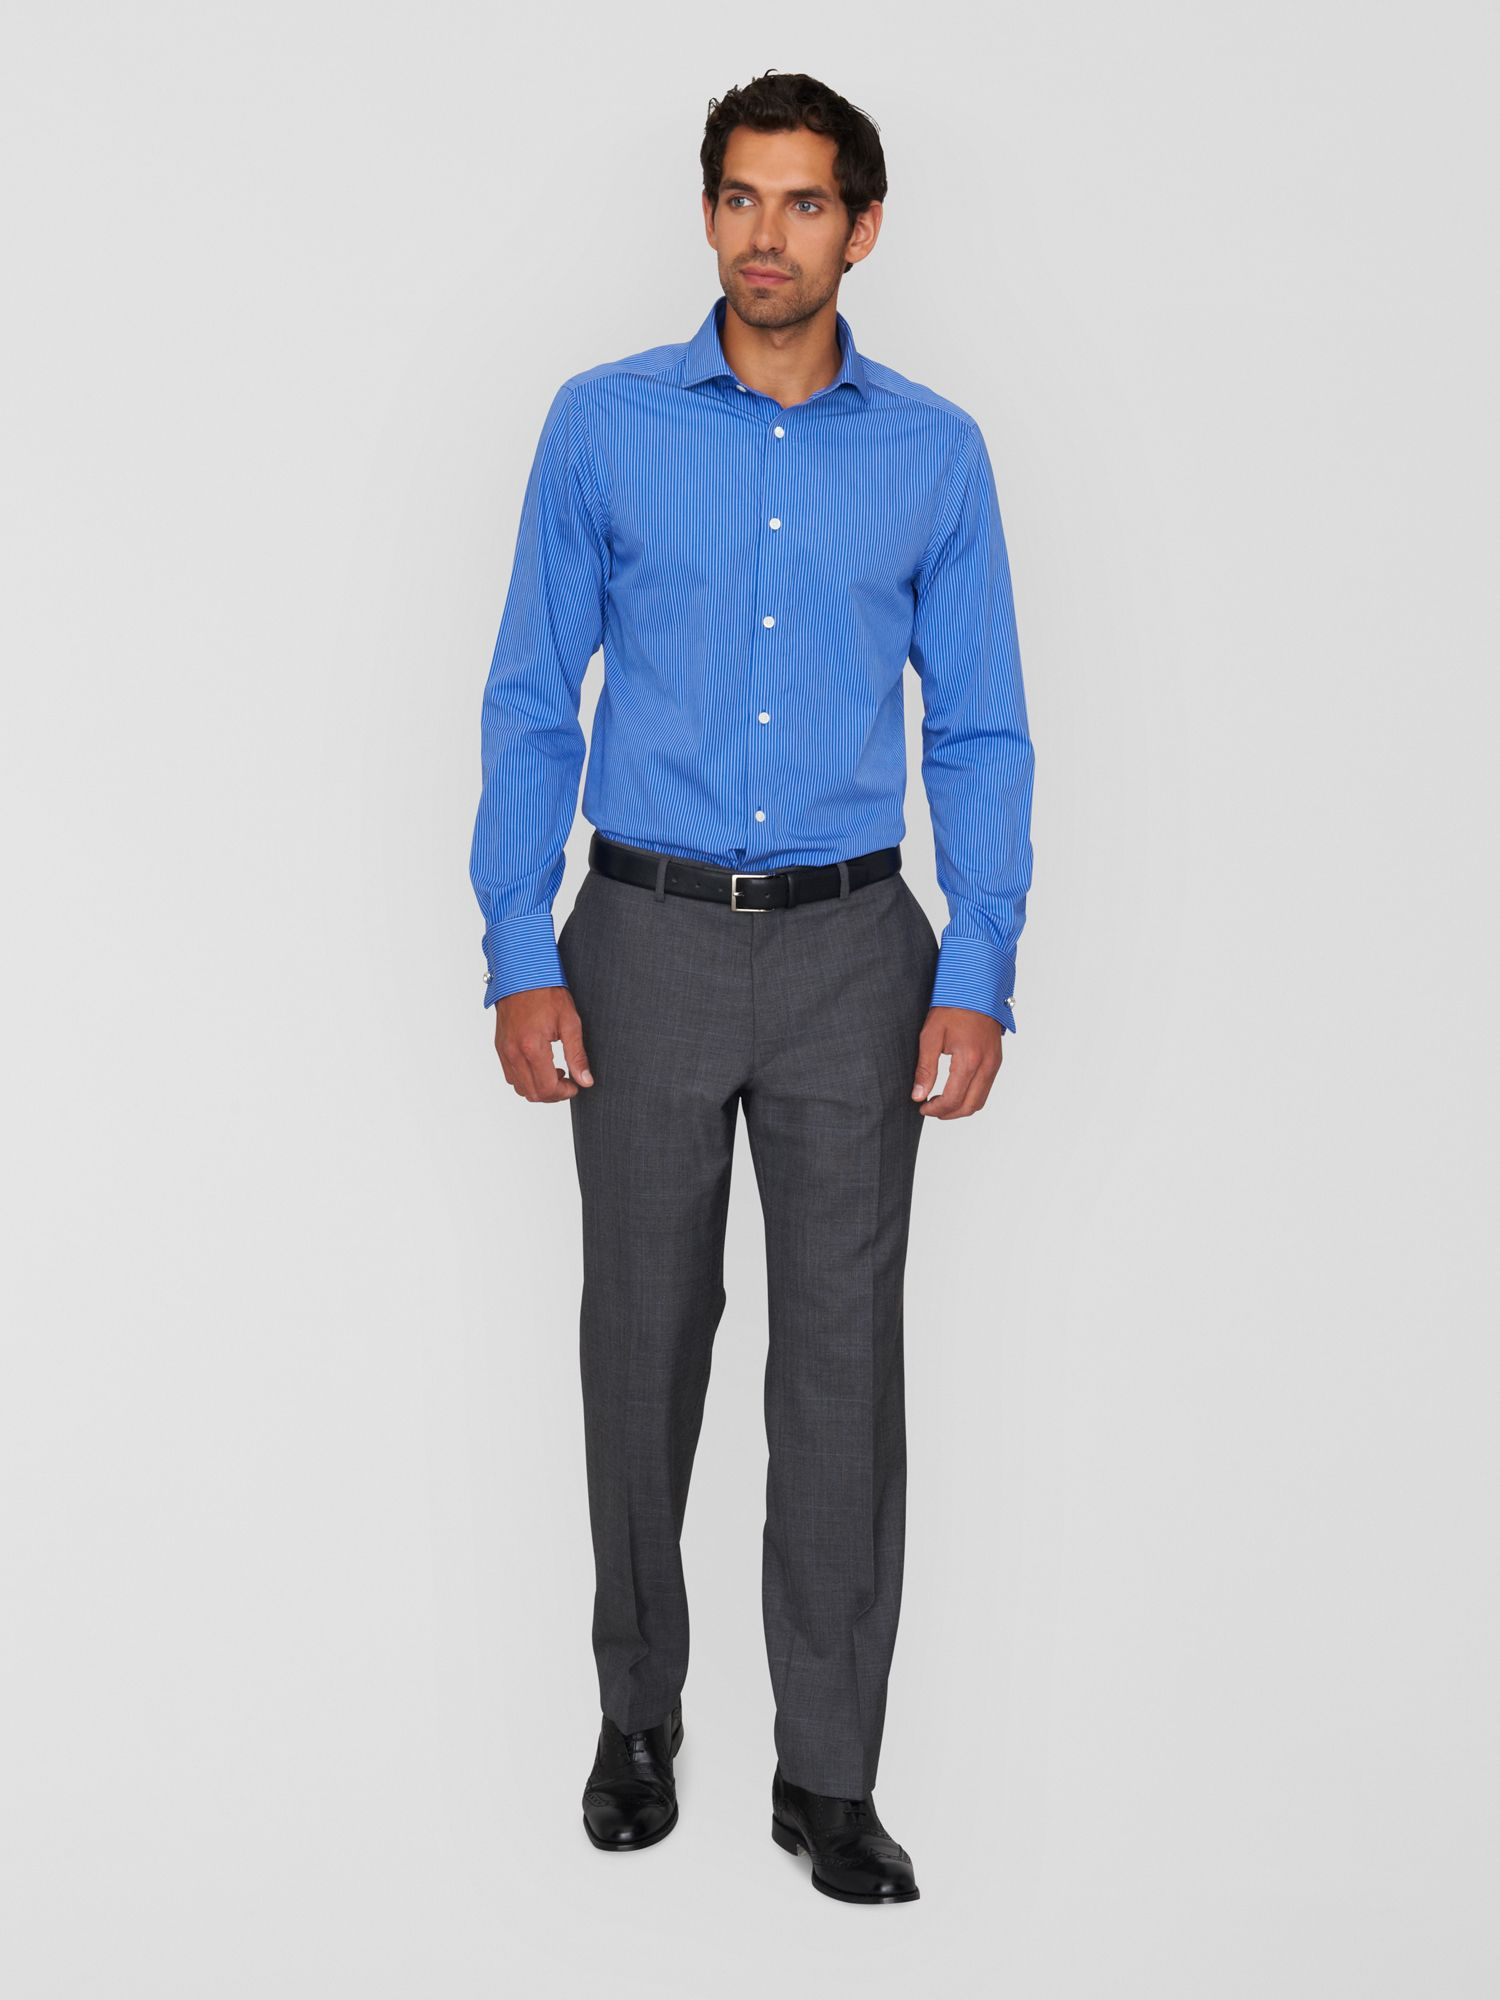 Prince of Wales overcheck trousers